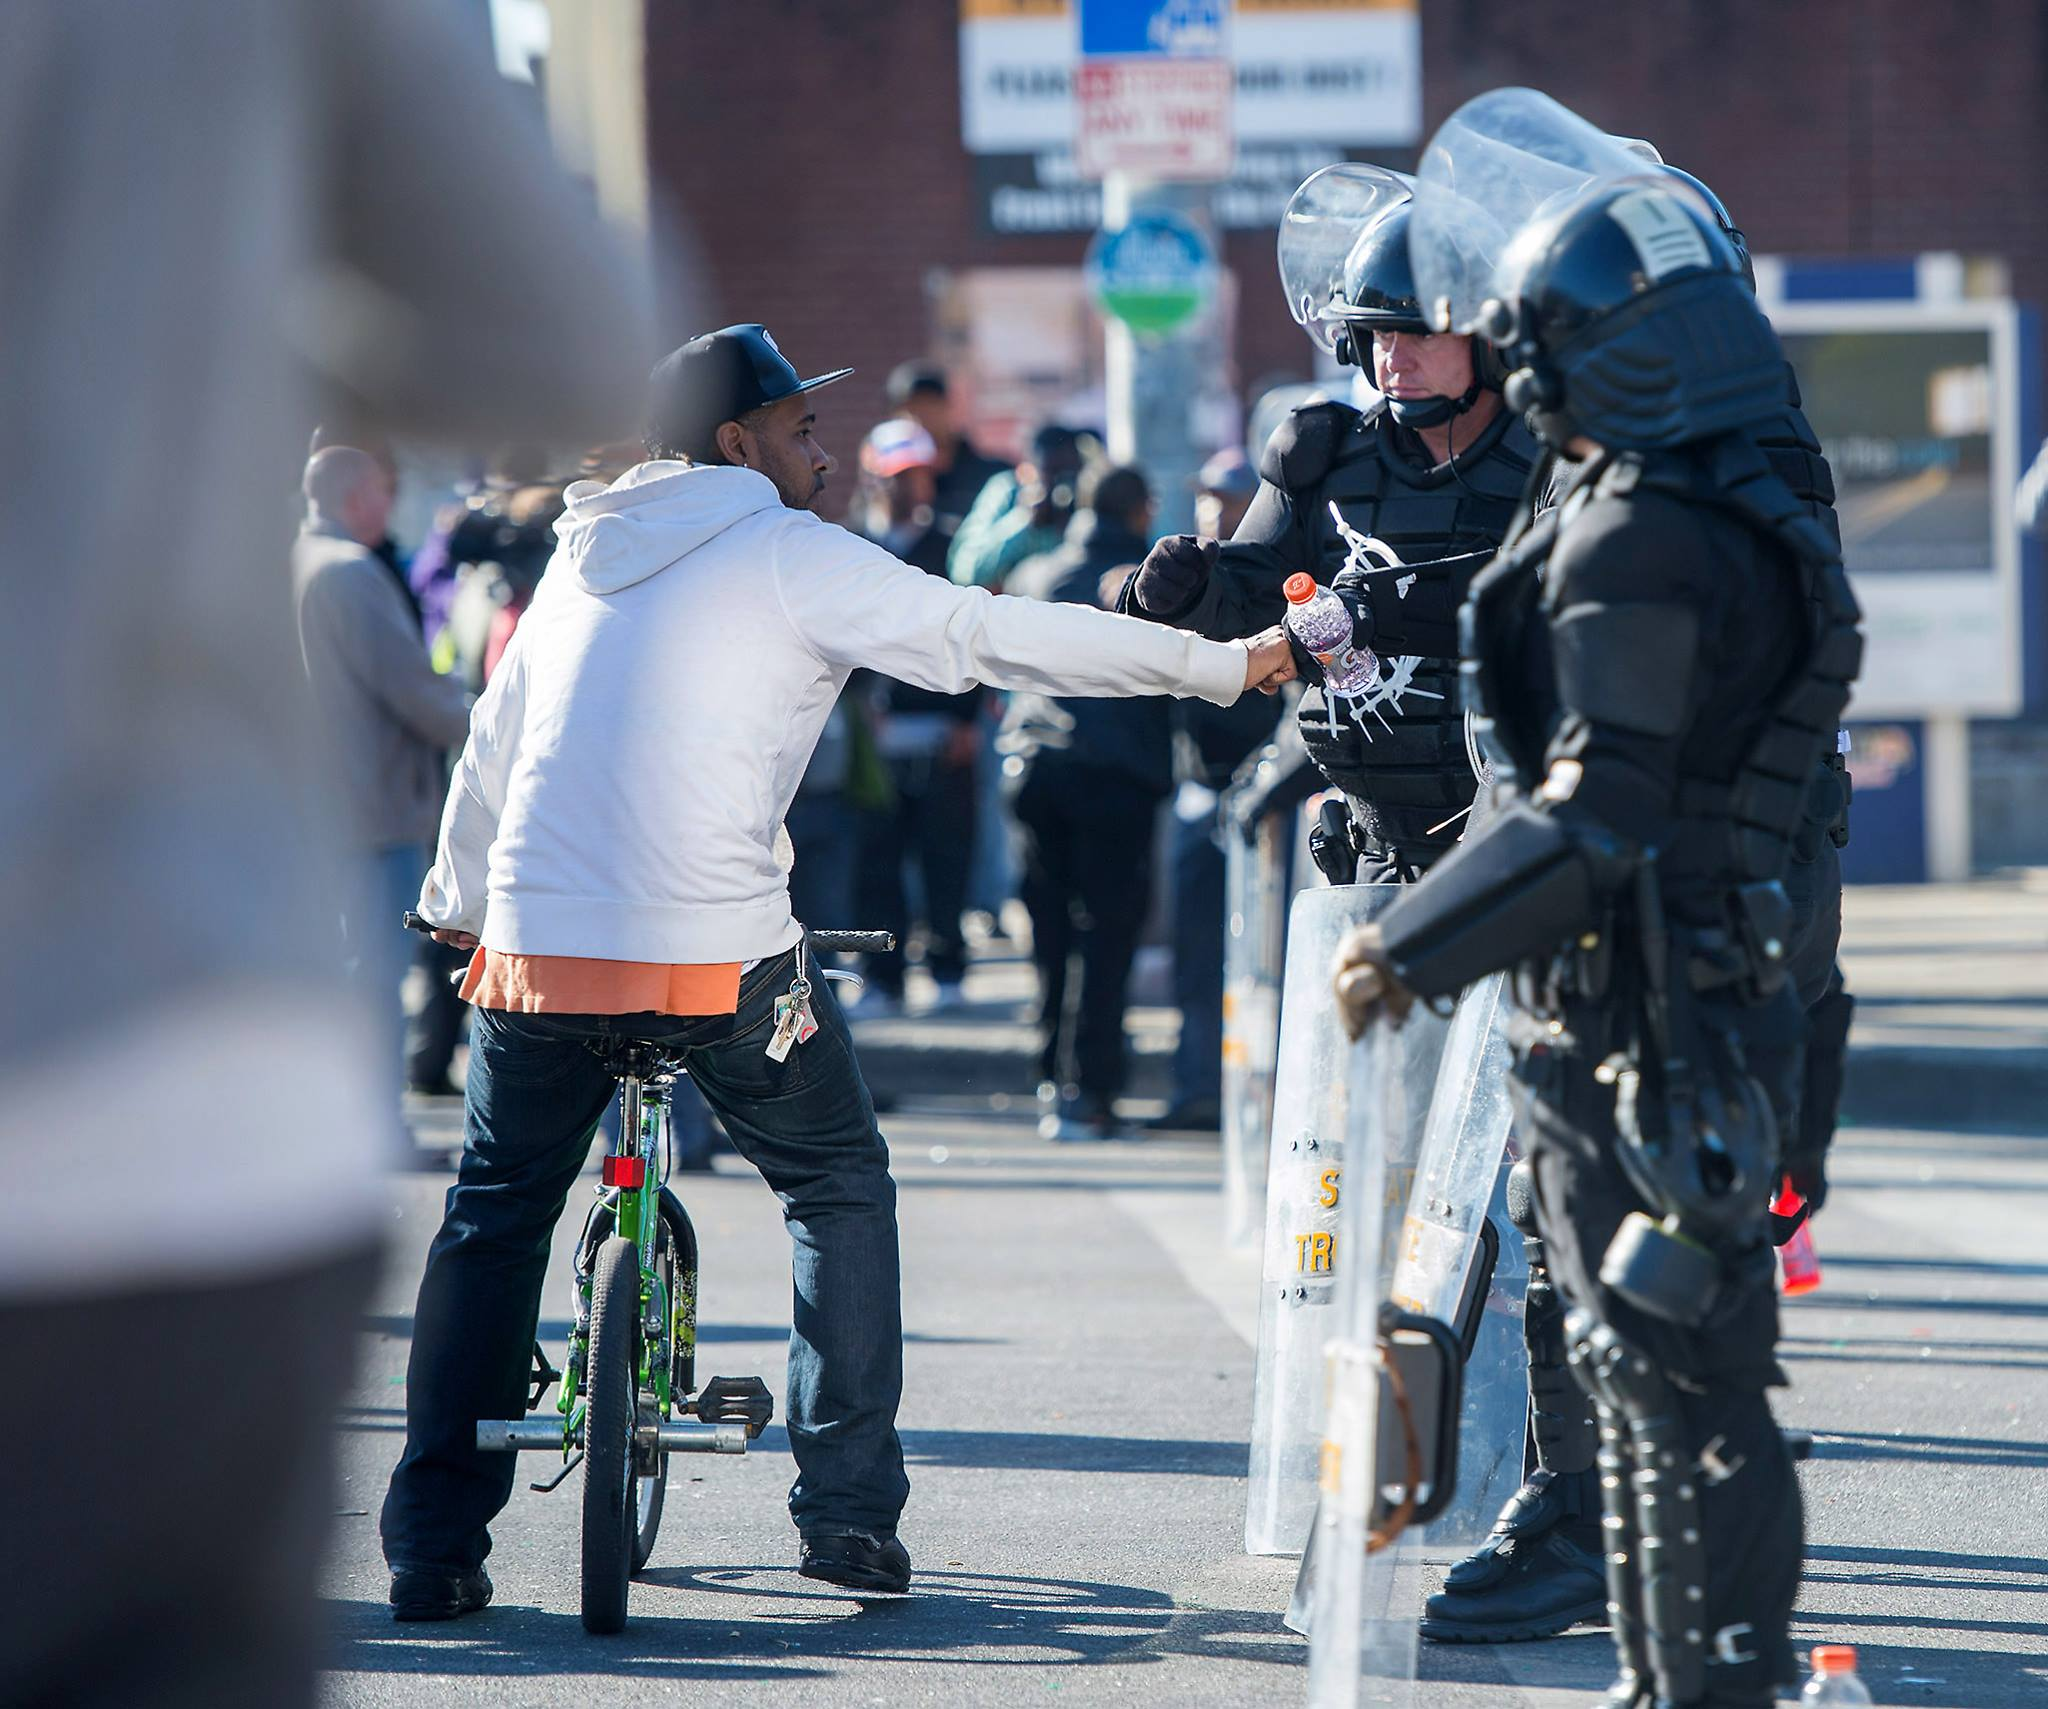 a young man giving Baltimore PD a fist bump